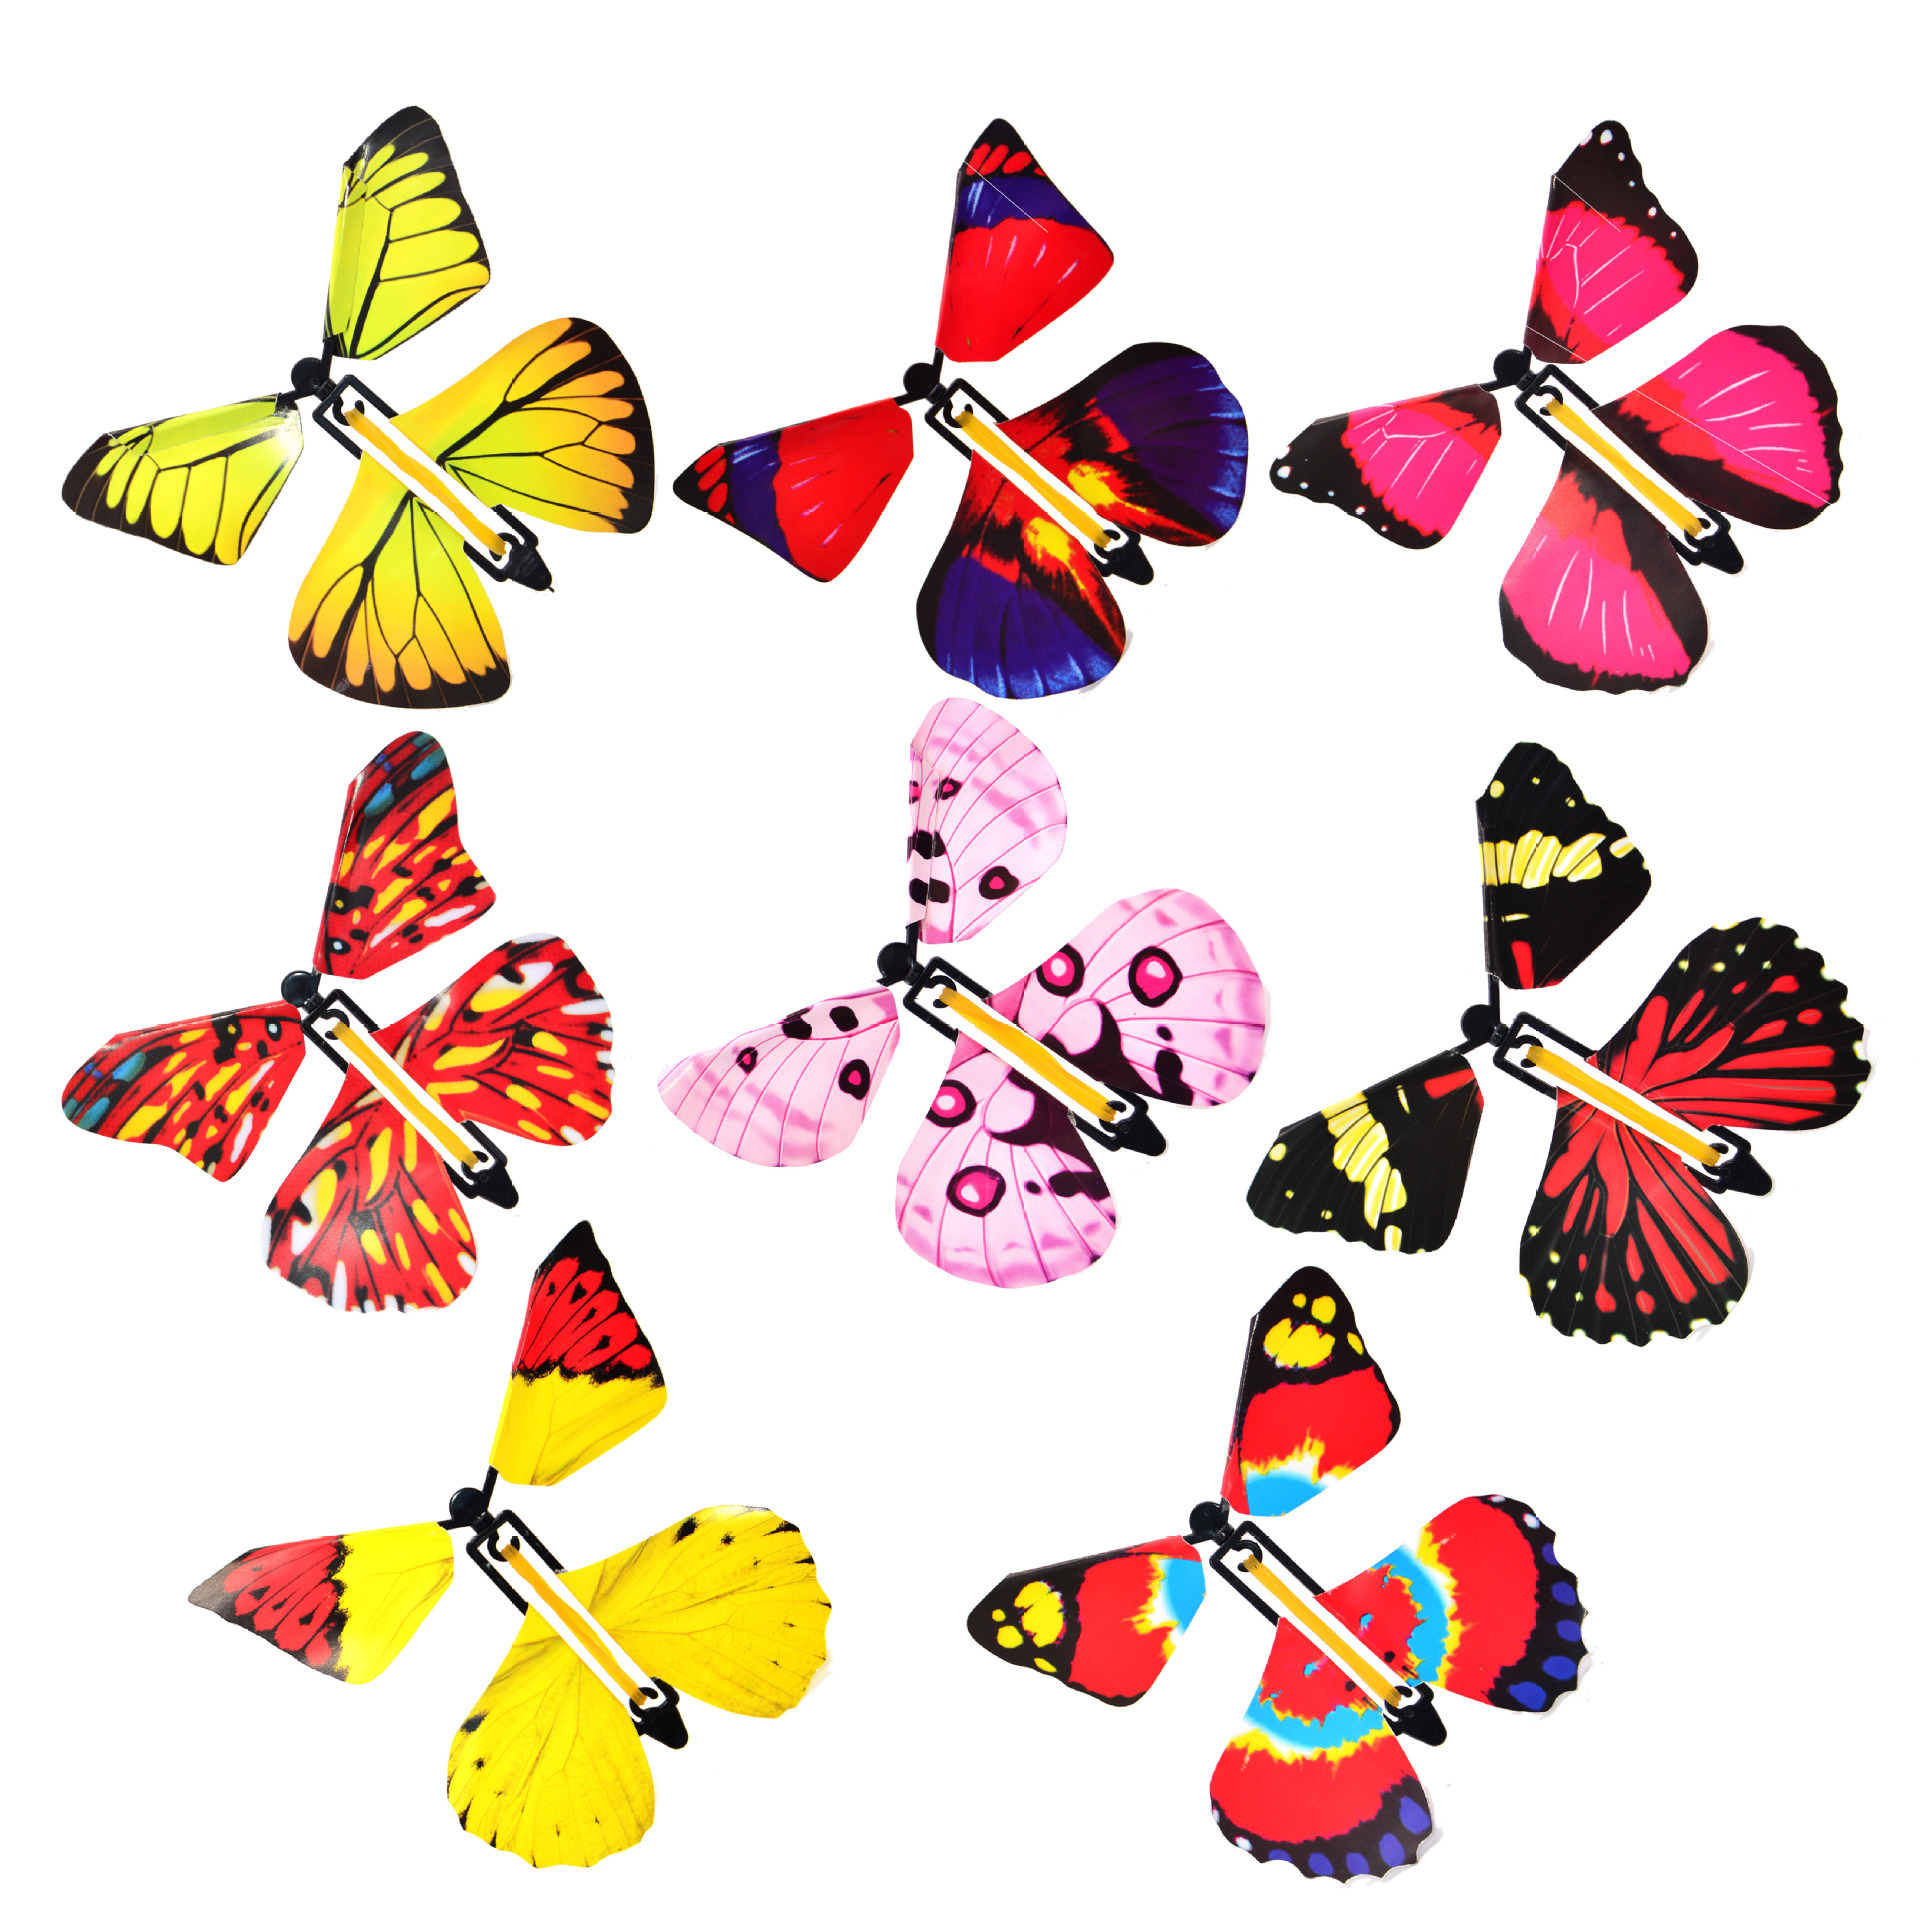 iWish 10x12cm Magic Butterfly Flying Science Technology Production For Children Hand-Made Toys DIY Popular Equipm Christmas Kids